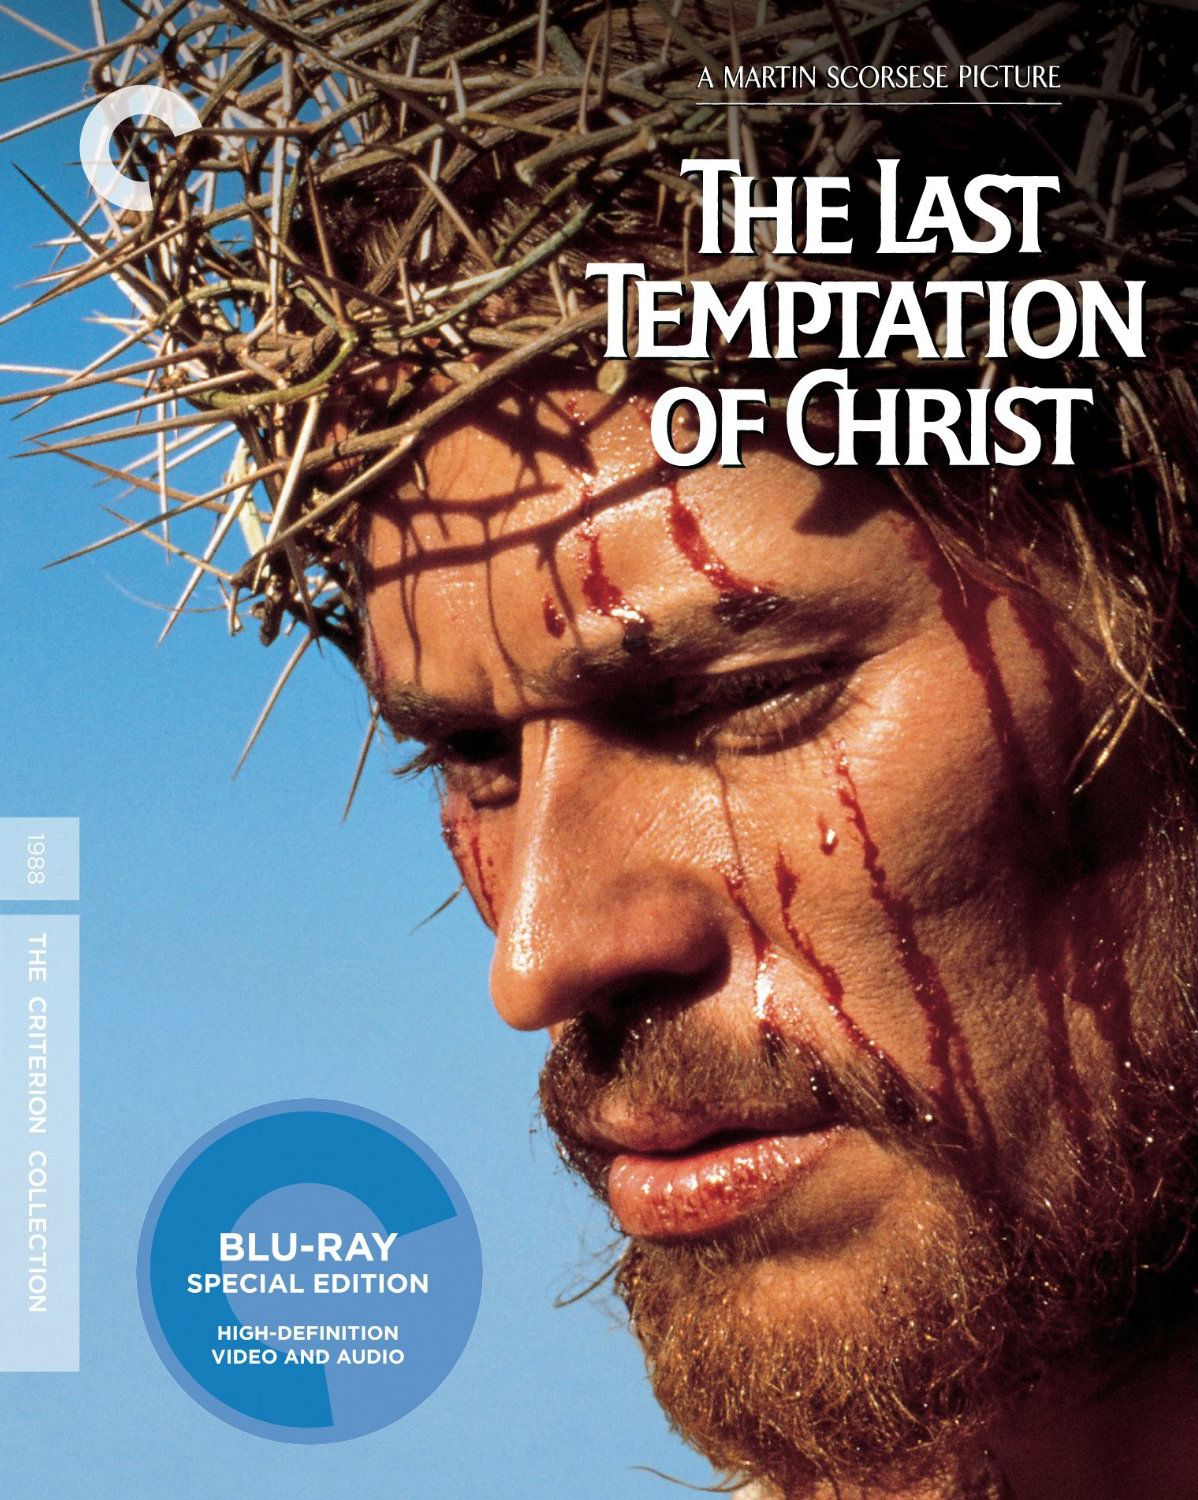 the last temptation of christ blu ray review slant magazine